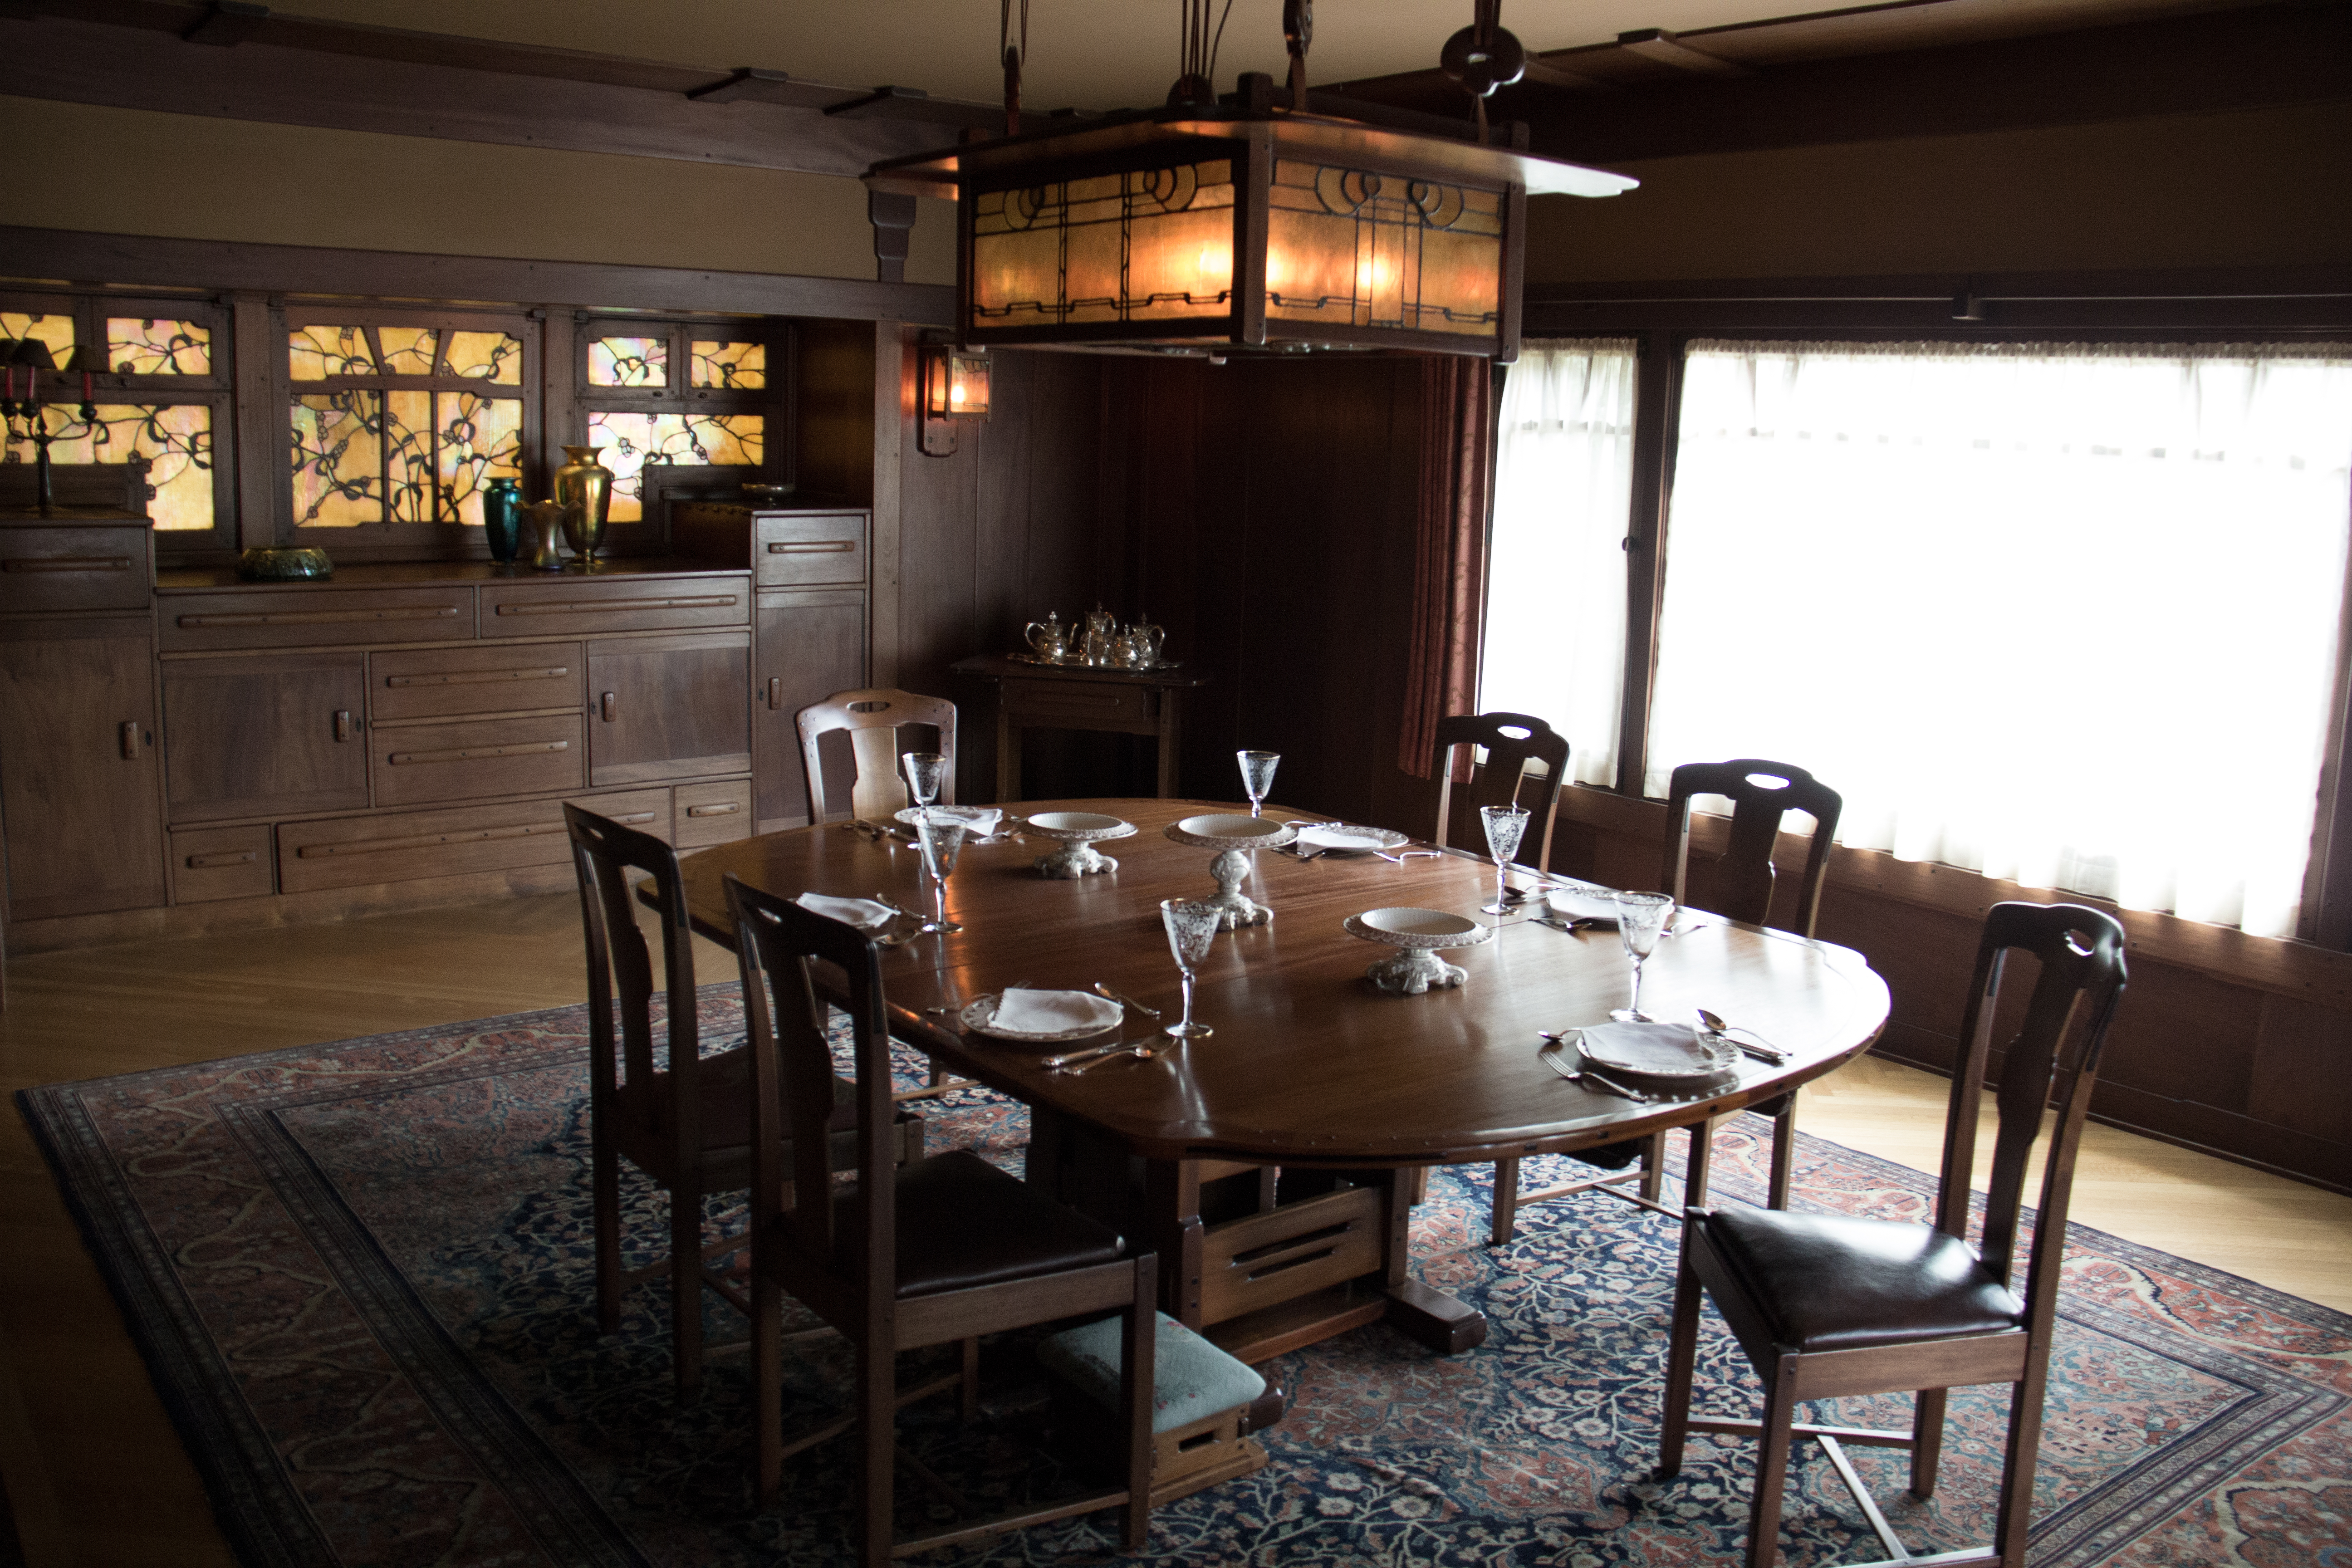 The Dining Room Table Set With Period Irish Porcelain Photography By Thomas  Harlander · Gamble House ... Part 83